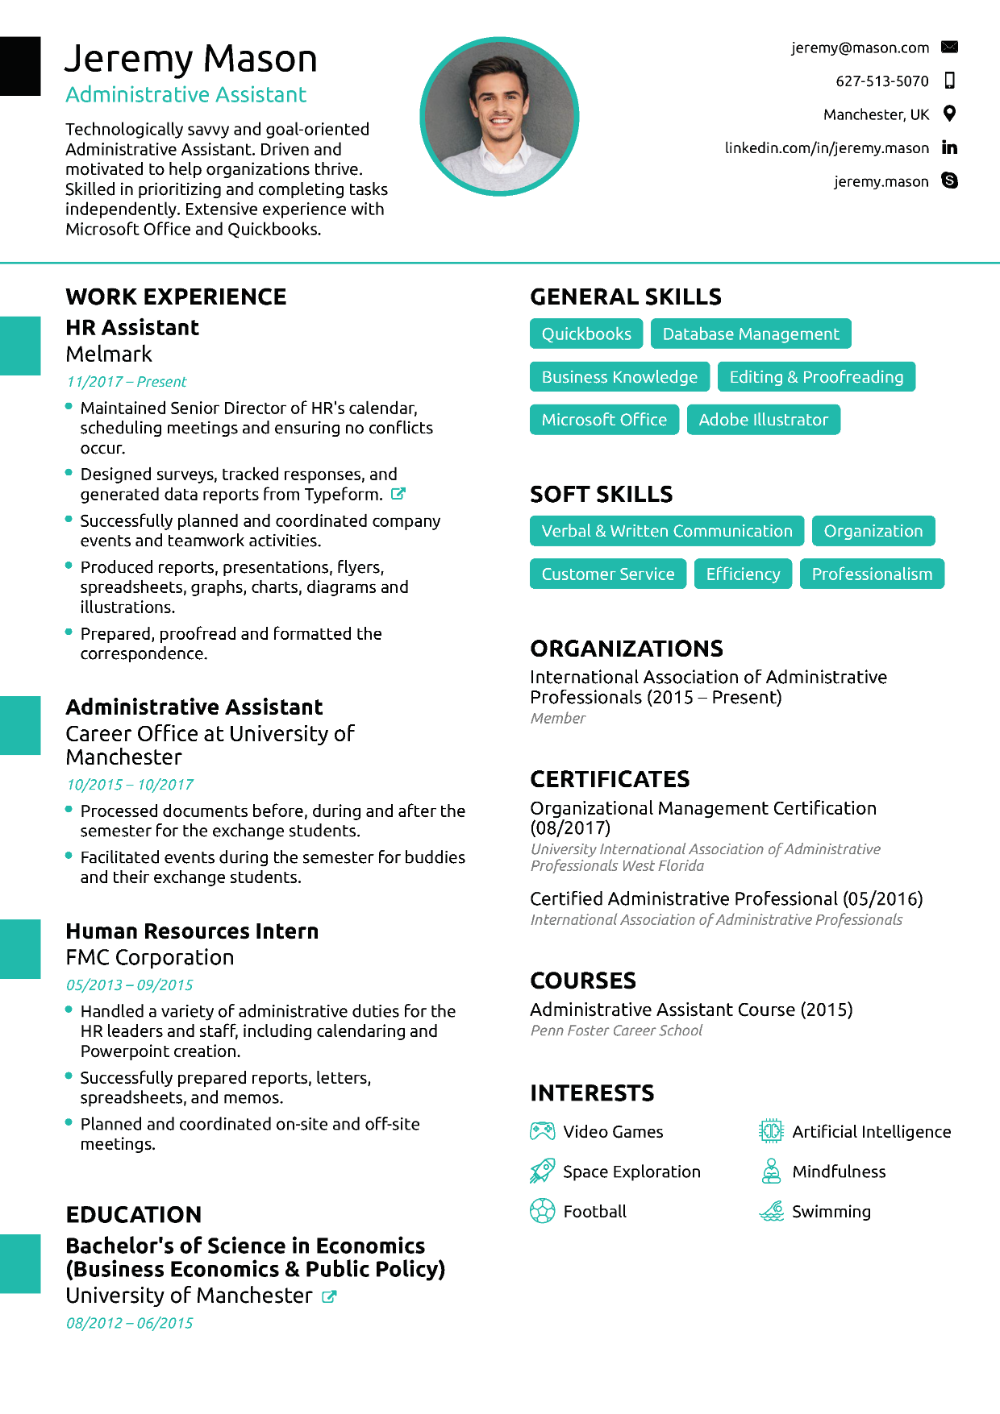 Cv De L Adjointe Administrative 2019 Guide Et Exemples Cv Assistante Administrative Cv Lettre De Motivation Competences Cv